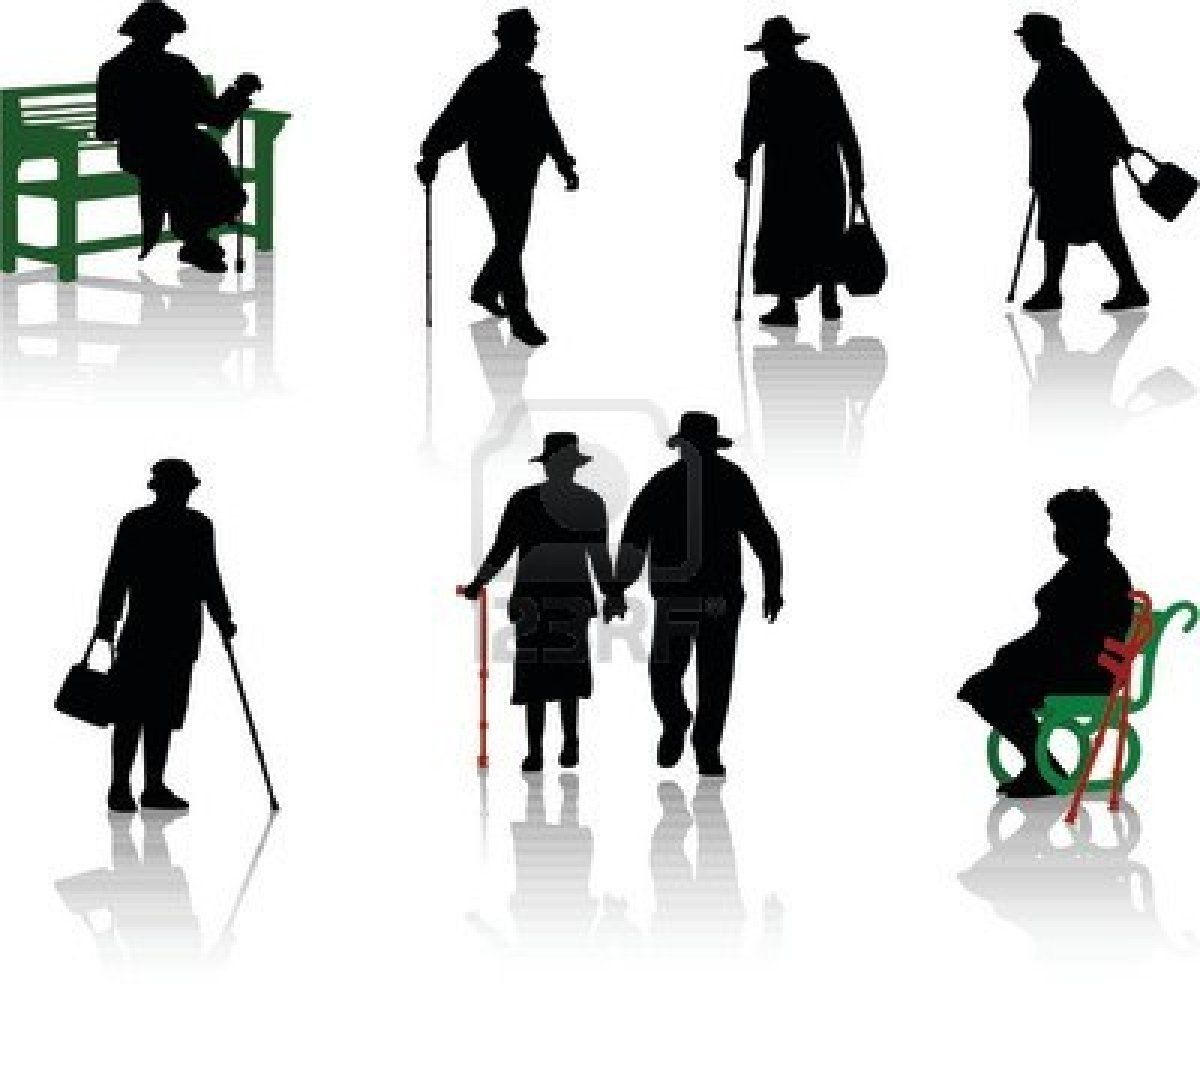 951530 Silhouette Of Old People Jpg 1 200 1 065 Pixels Person Silhouette Silhouette People Silhouette Vector